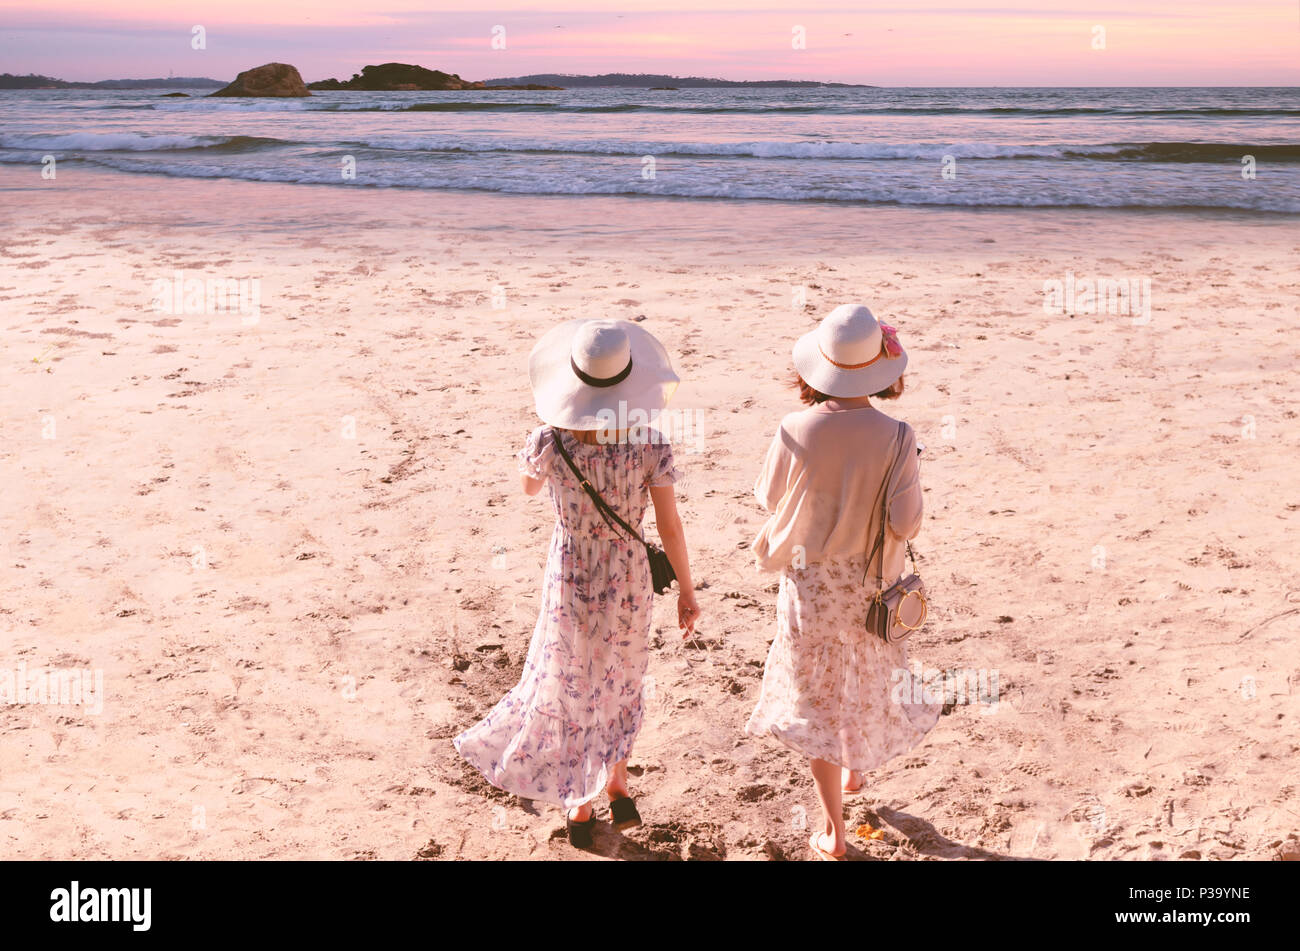 Two young friend  women in long dresses and hats walk along the beach to sea at evening sunset time. The concept of feminism, independence of women - Stock Image